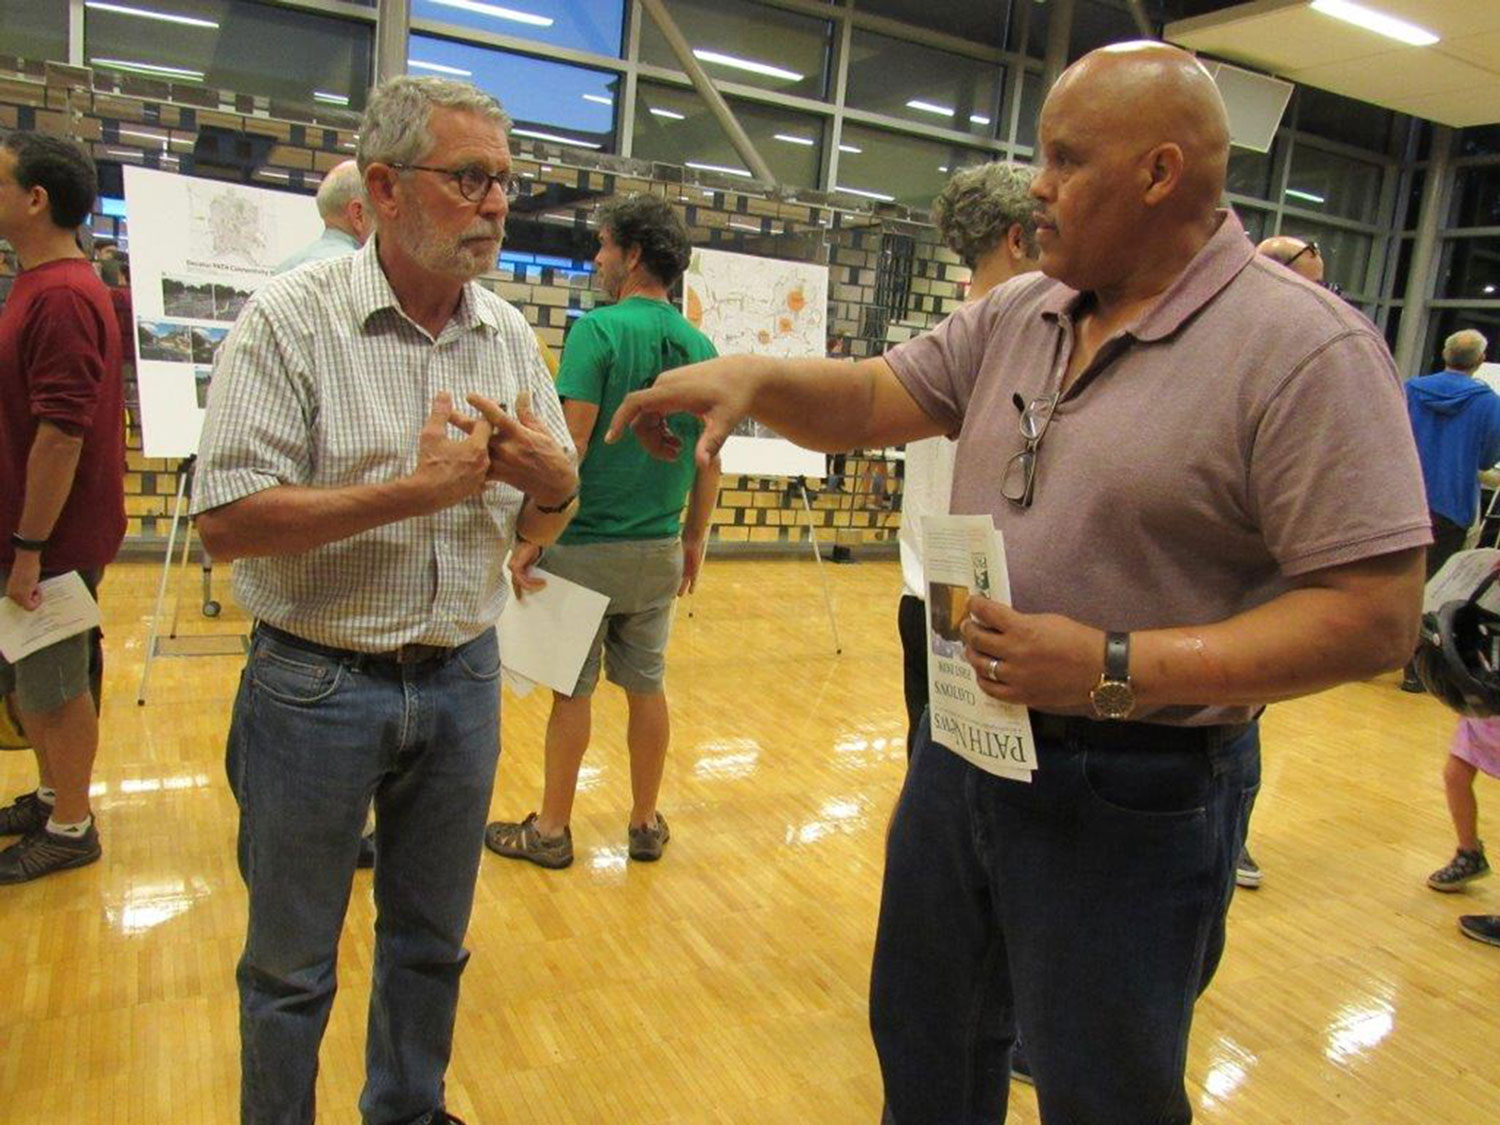 City Manager, Hugh Saxon, Deputy City Manager discusses the trail master plan with an interested citizen